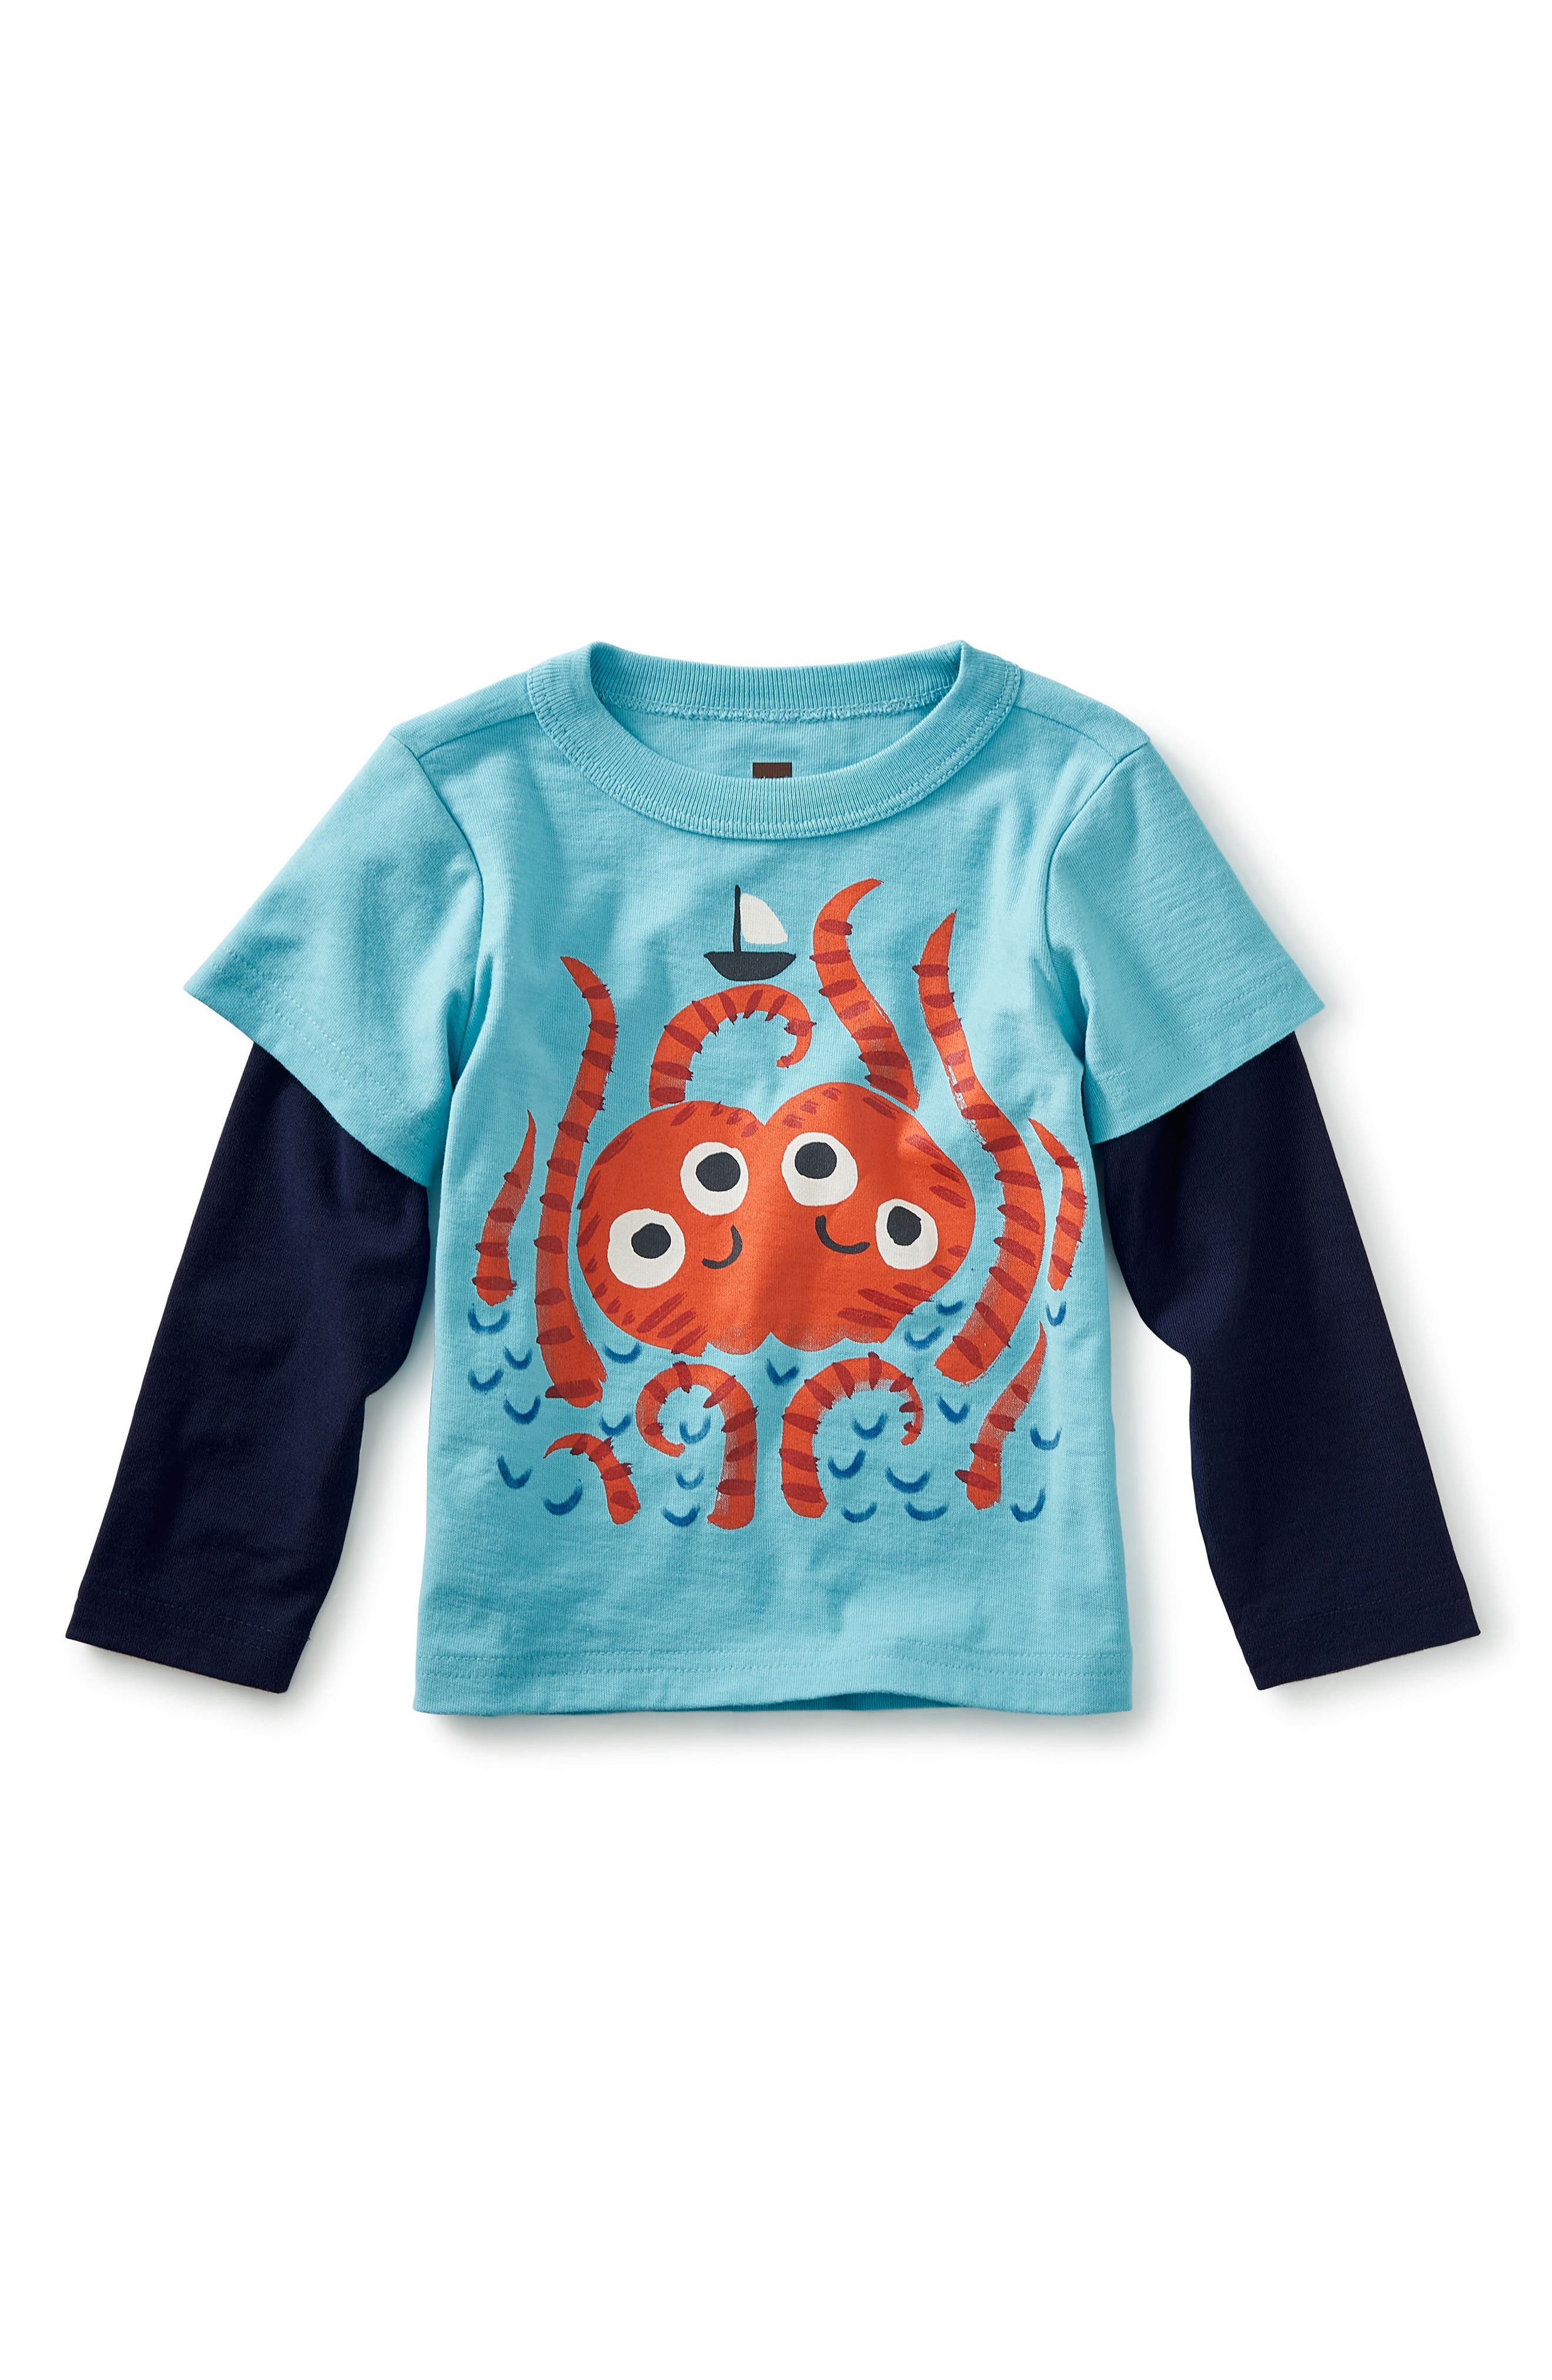 Main Image - Tea Collection Sea Monster Graphic T-Shirt (Baby Boys)